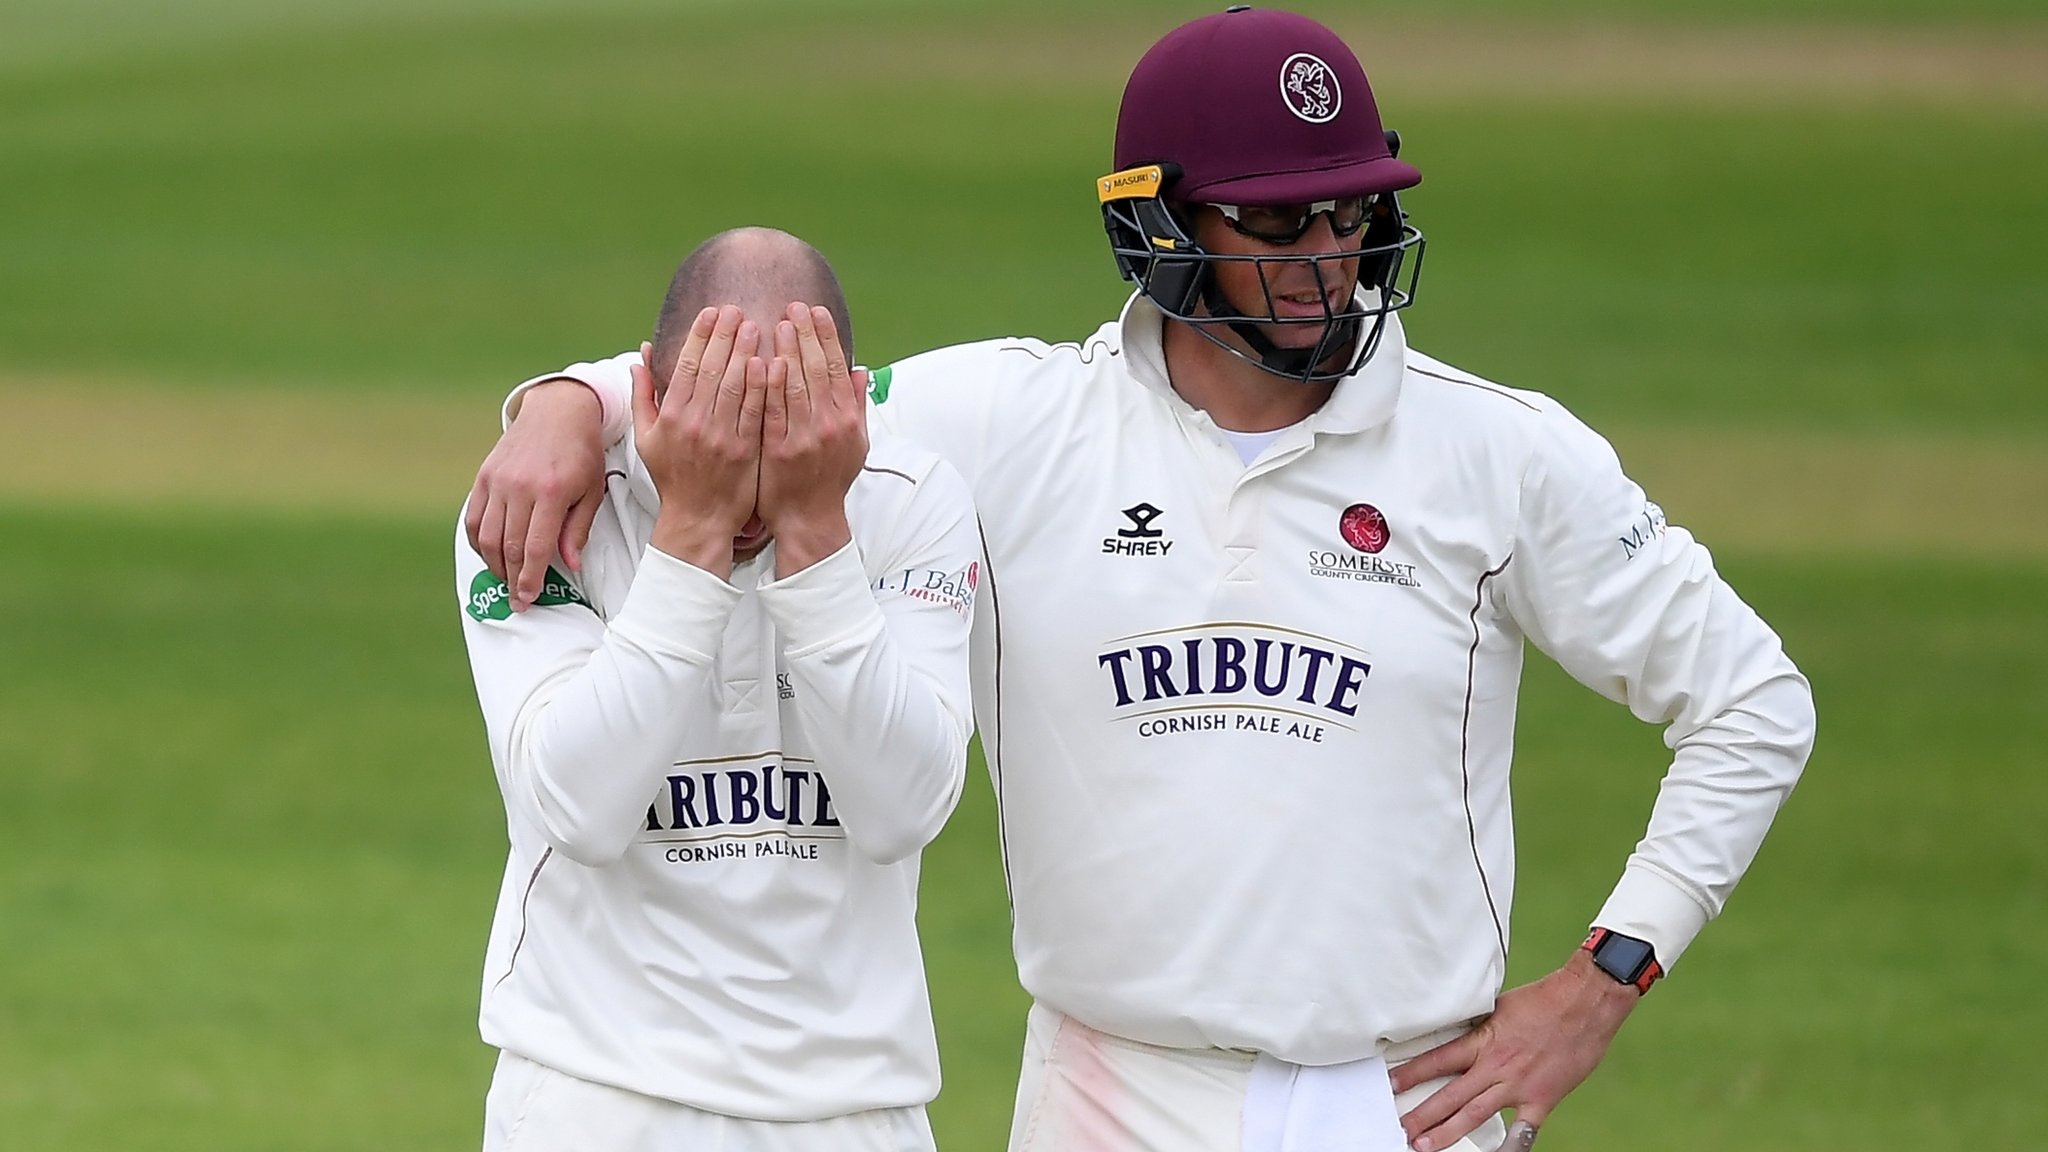 County Championship: Rain ruins final day as Somerset and Surrey share draw